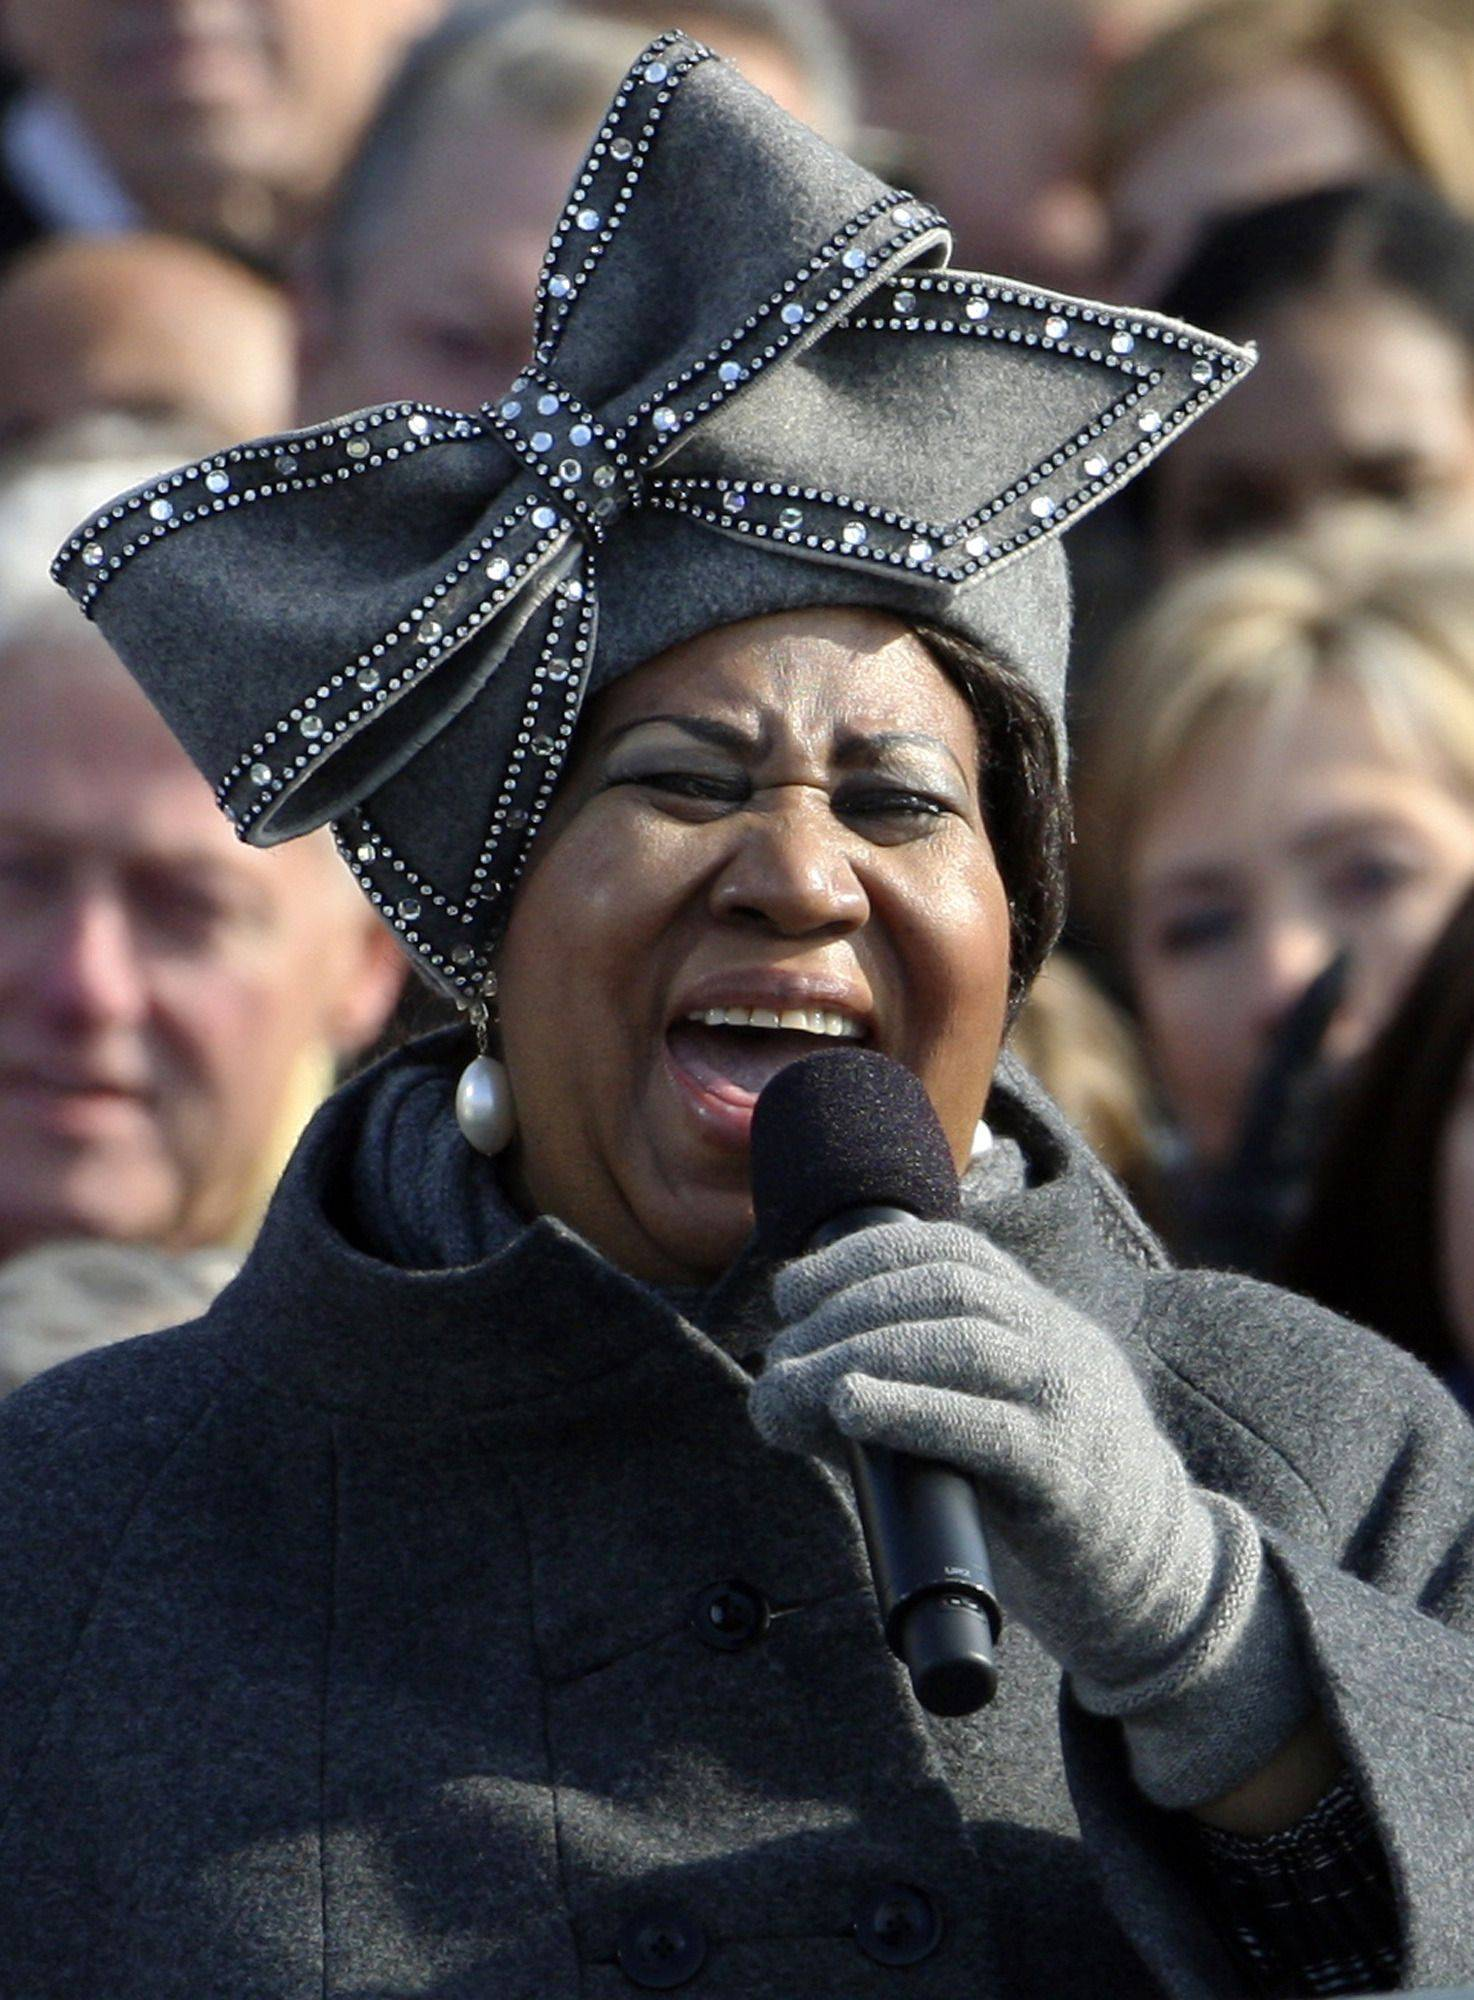 "In this Jan. 20, 2009 file photo, Aretha Franklin wears a gray felt custom-designed hat as she performs at the inauguration ceremony for President Barack Obama at the U.S. Capitol in Washington. Franklin says it would be hard to part with the hat since the day was ""a crowning moment in history,"" but will consider donating the hat to the Smithsonian Institution for an exhibit."